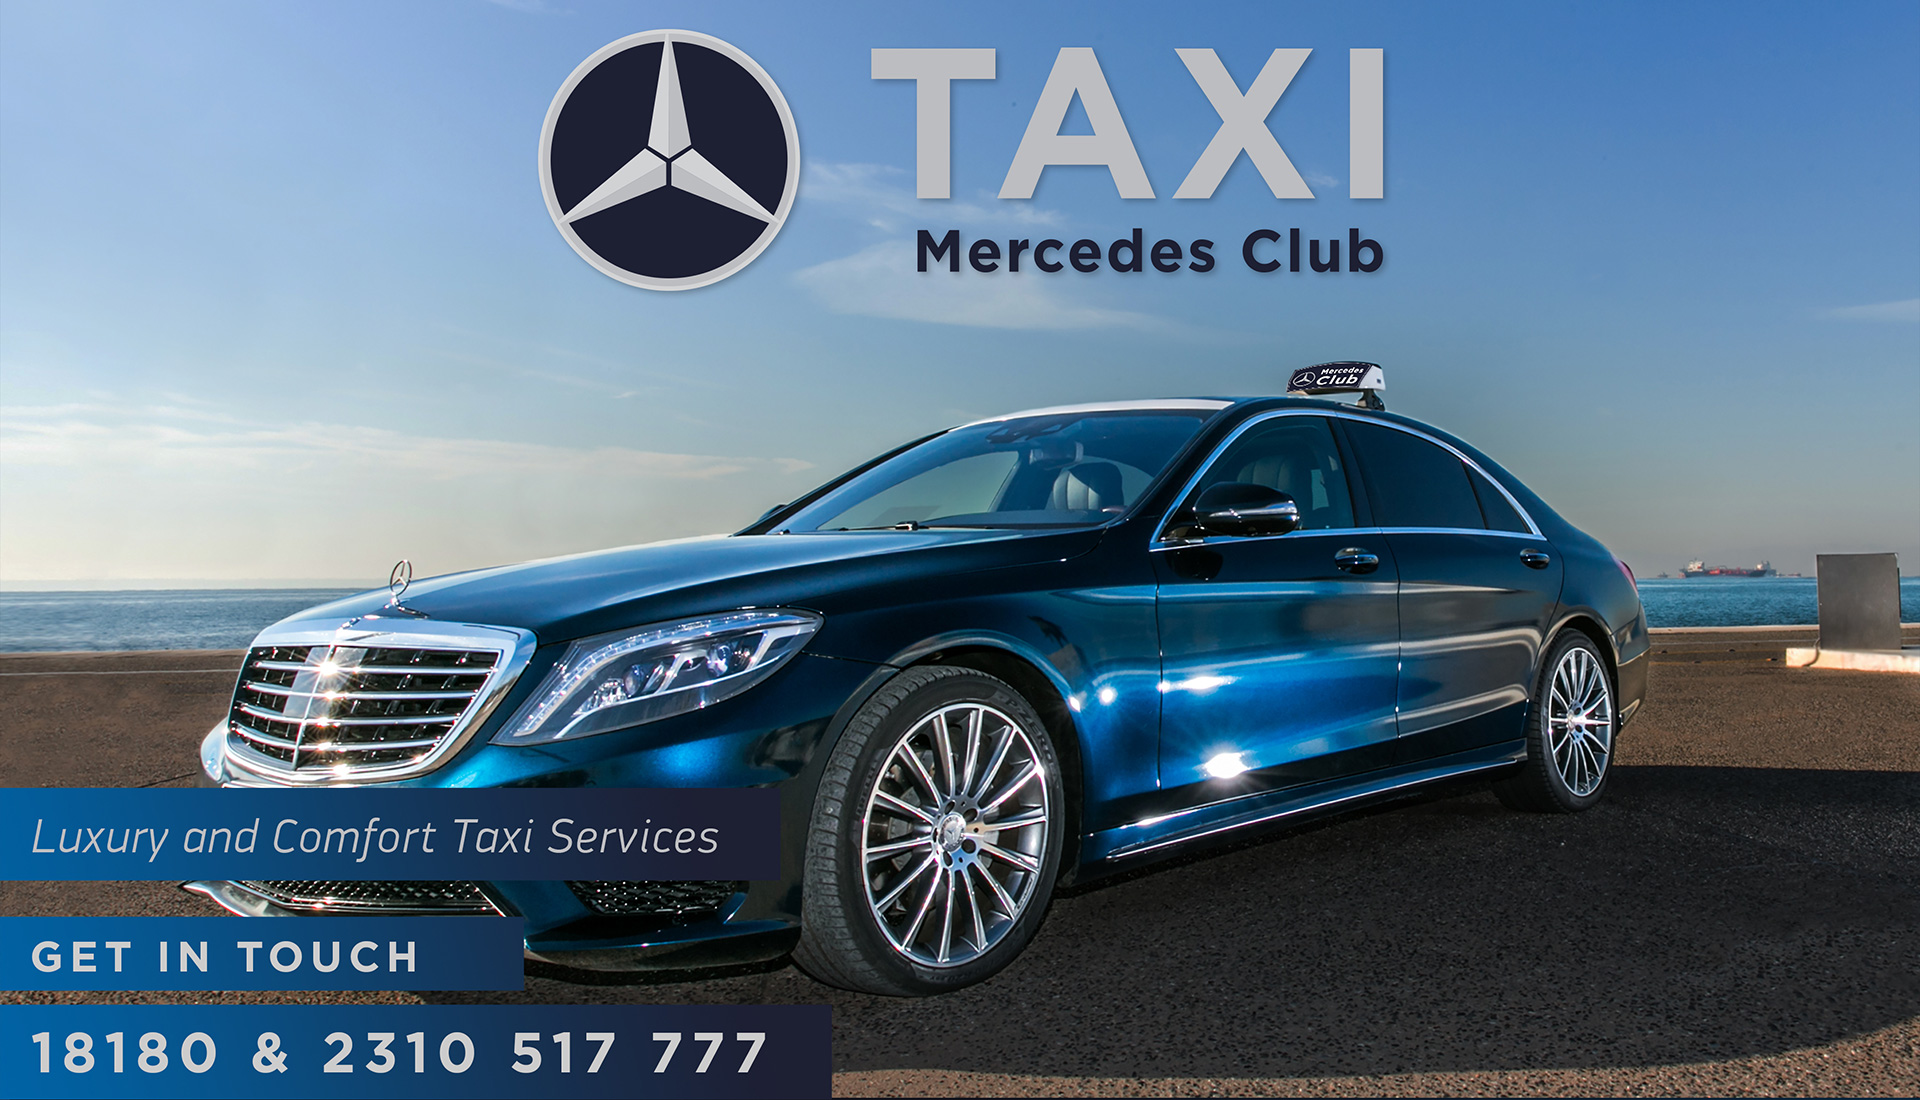 mercedes taxi club luxury comfort taxi services